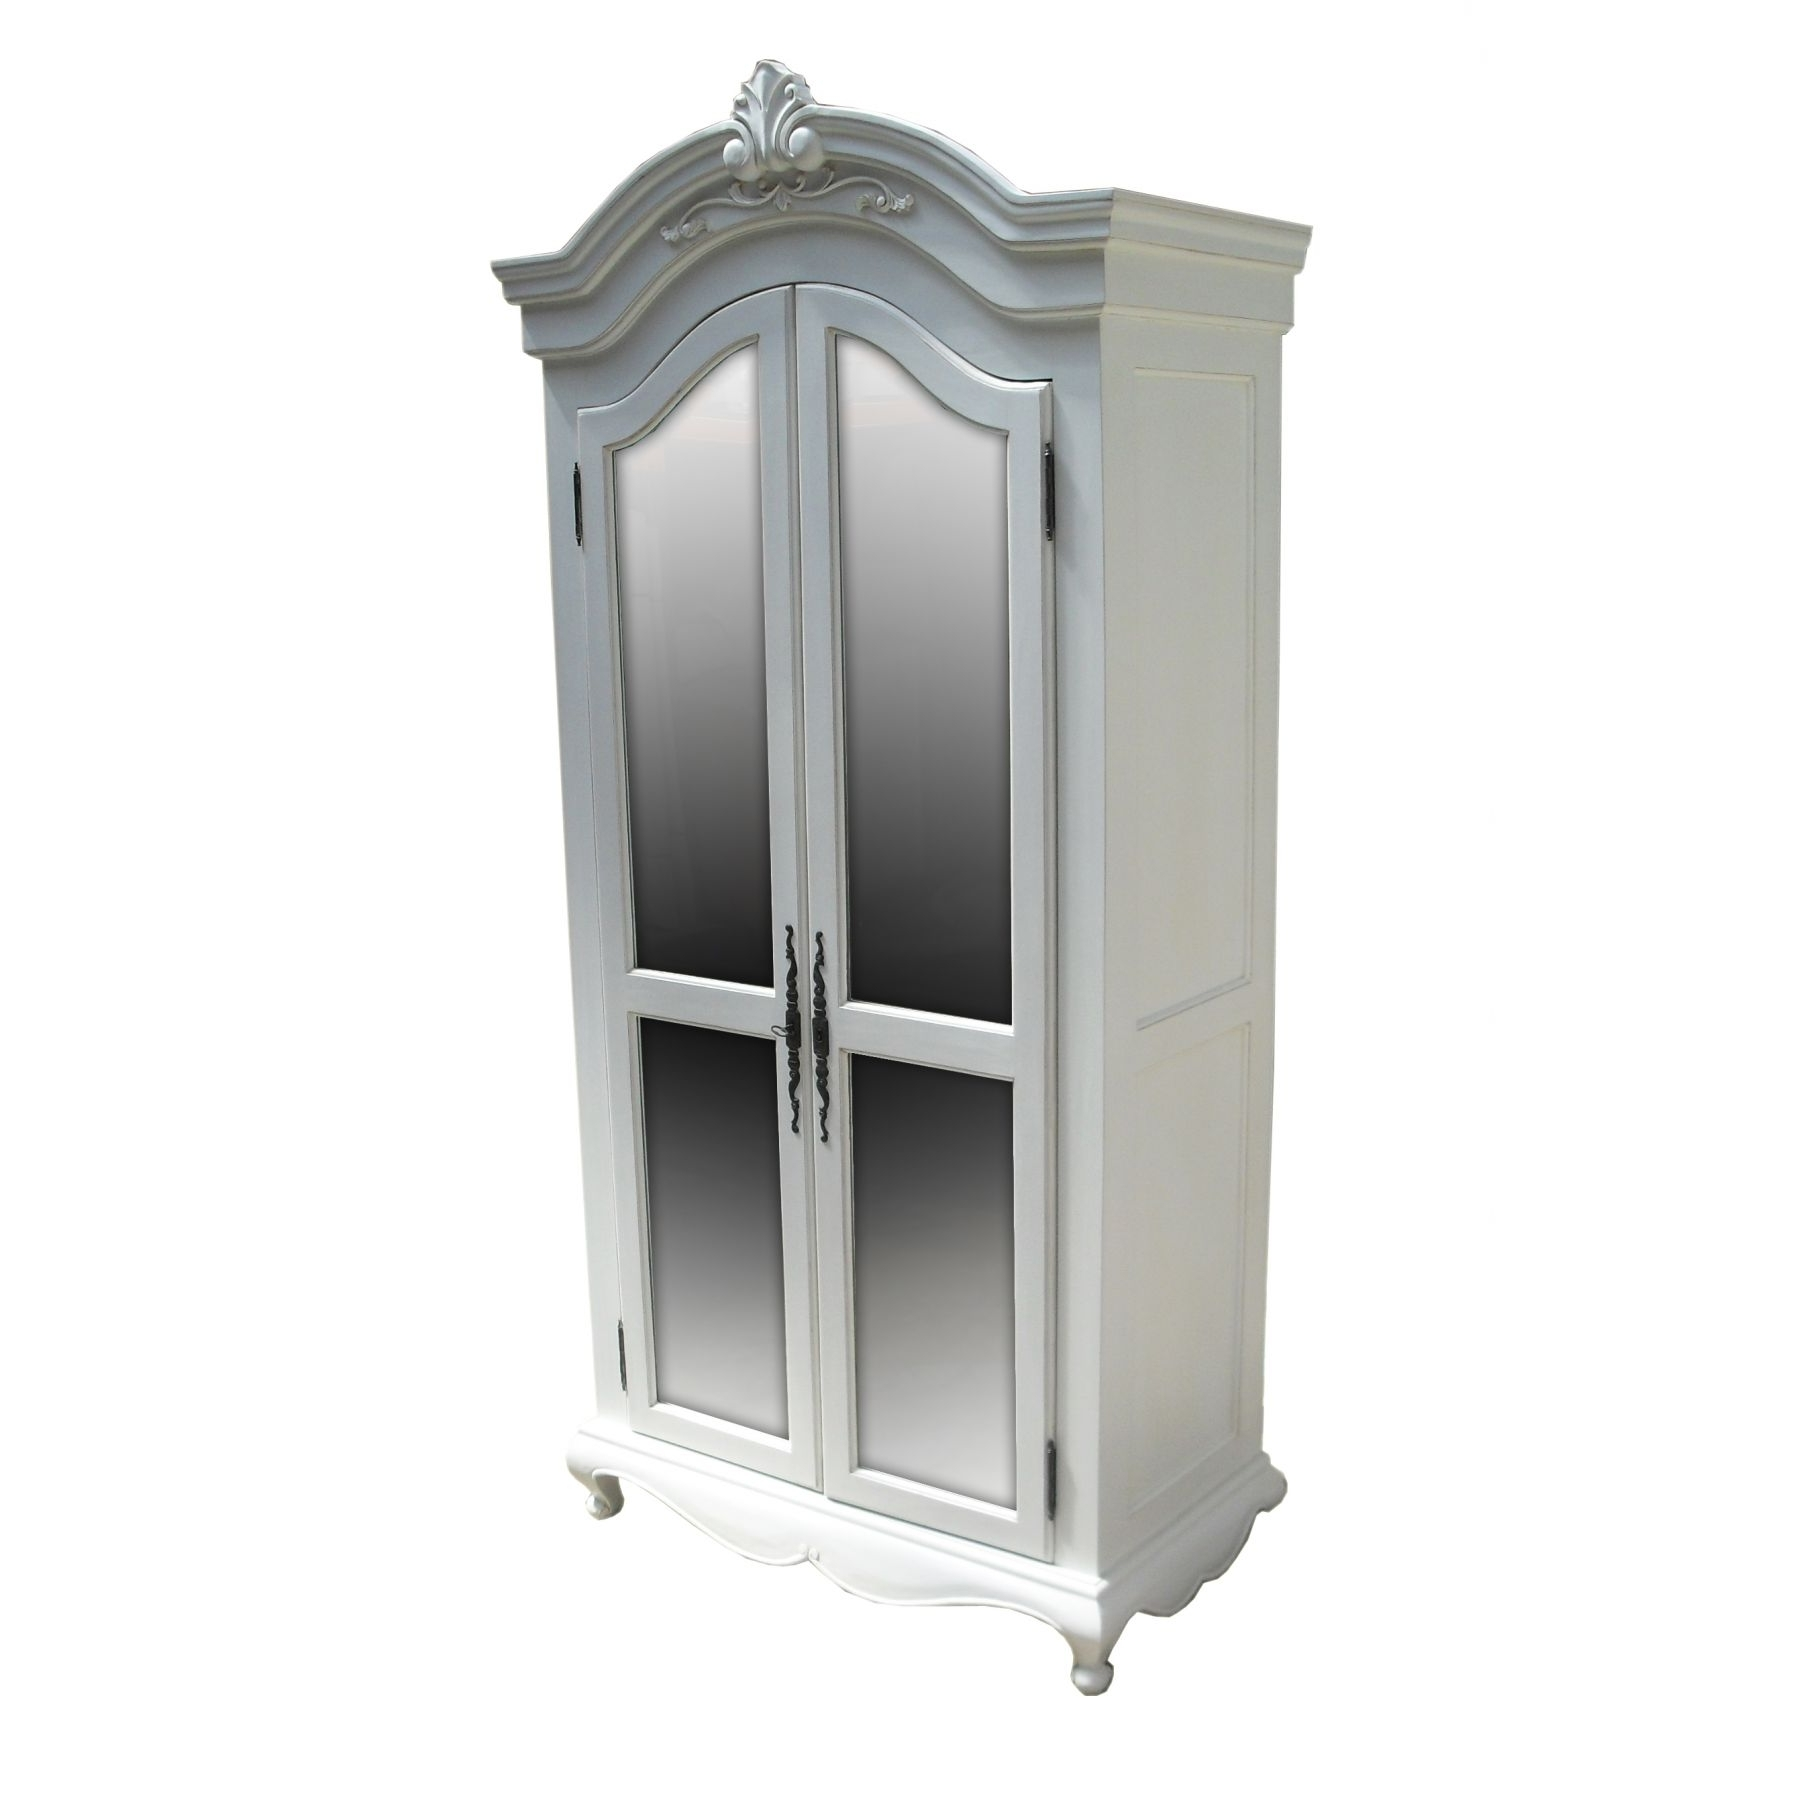 French Wardrobes White Armoire — Entrestl Decors : Elegant White With Favorite Black French Wardrobes (View 9 of 15)